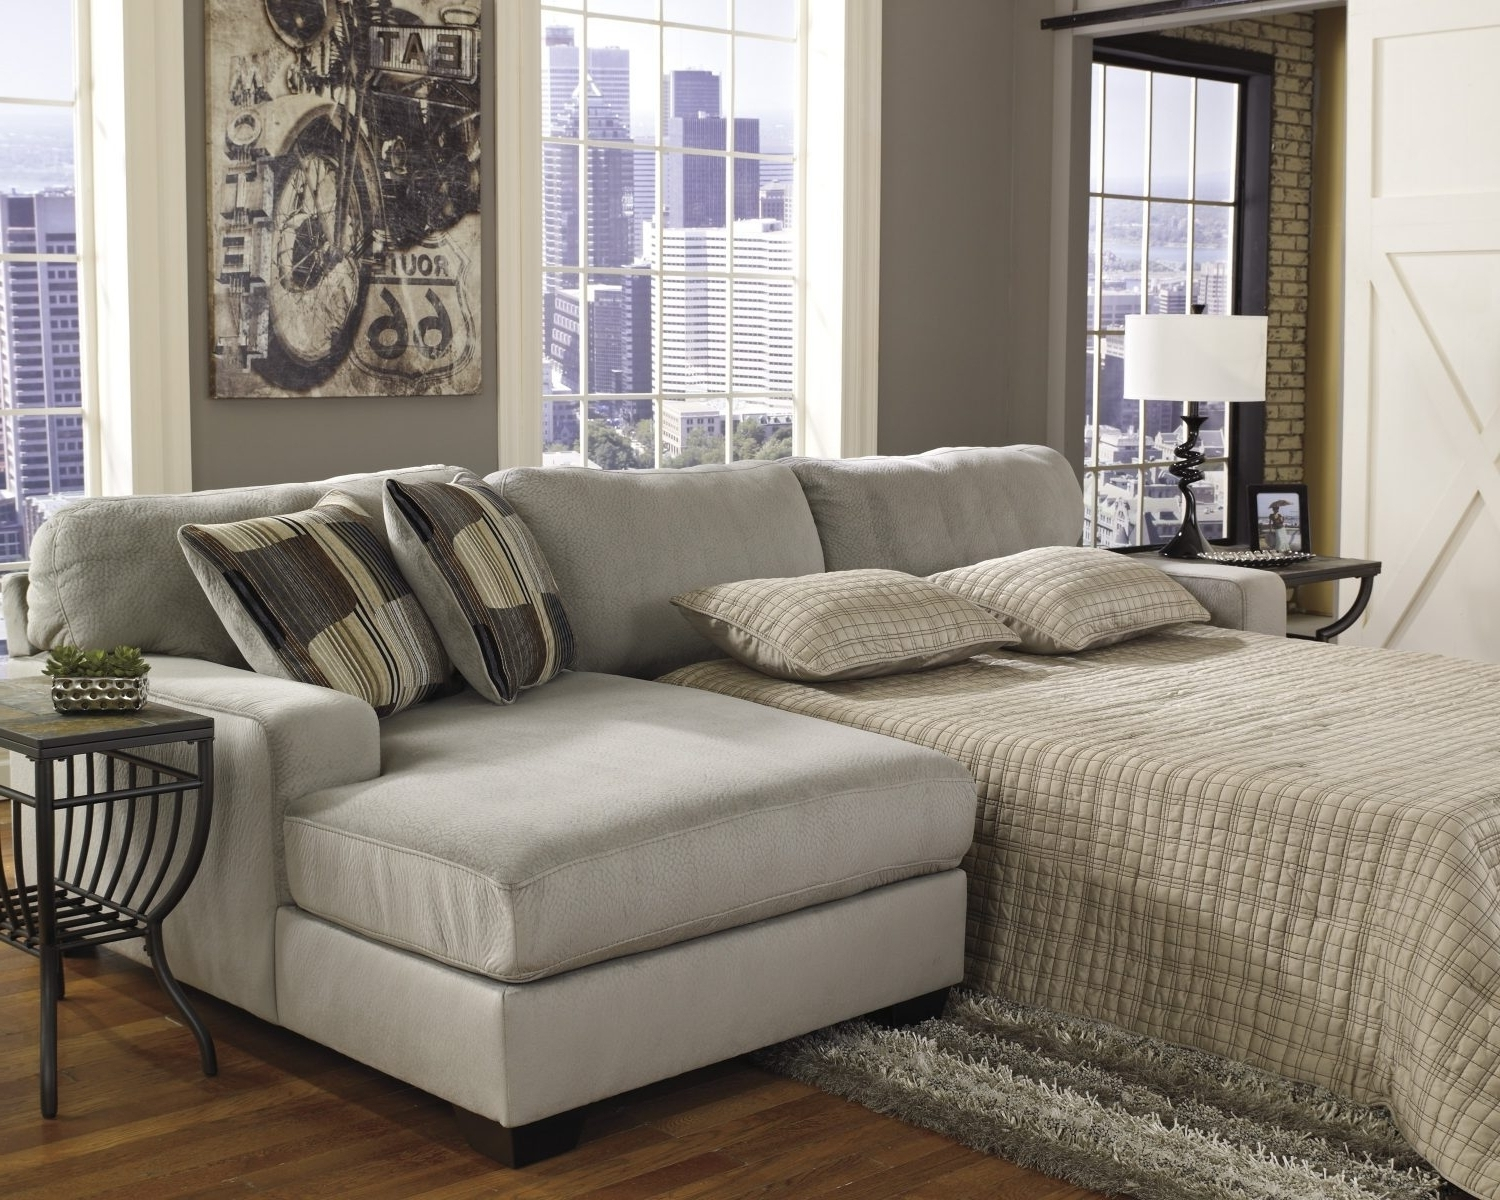 Brilliant Sectional Sofas Cincinnati – Buildsimplehome For Best And Newest Cincinnati Sectional Sofas (View 1 of 20)